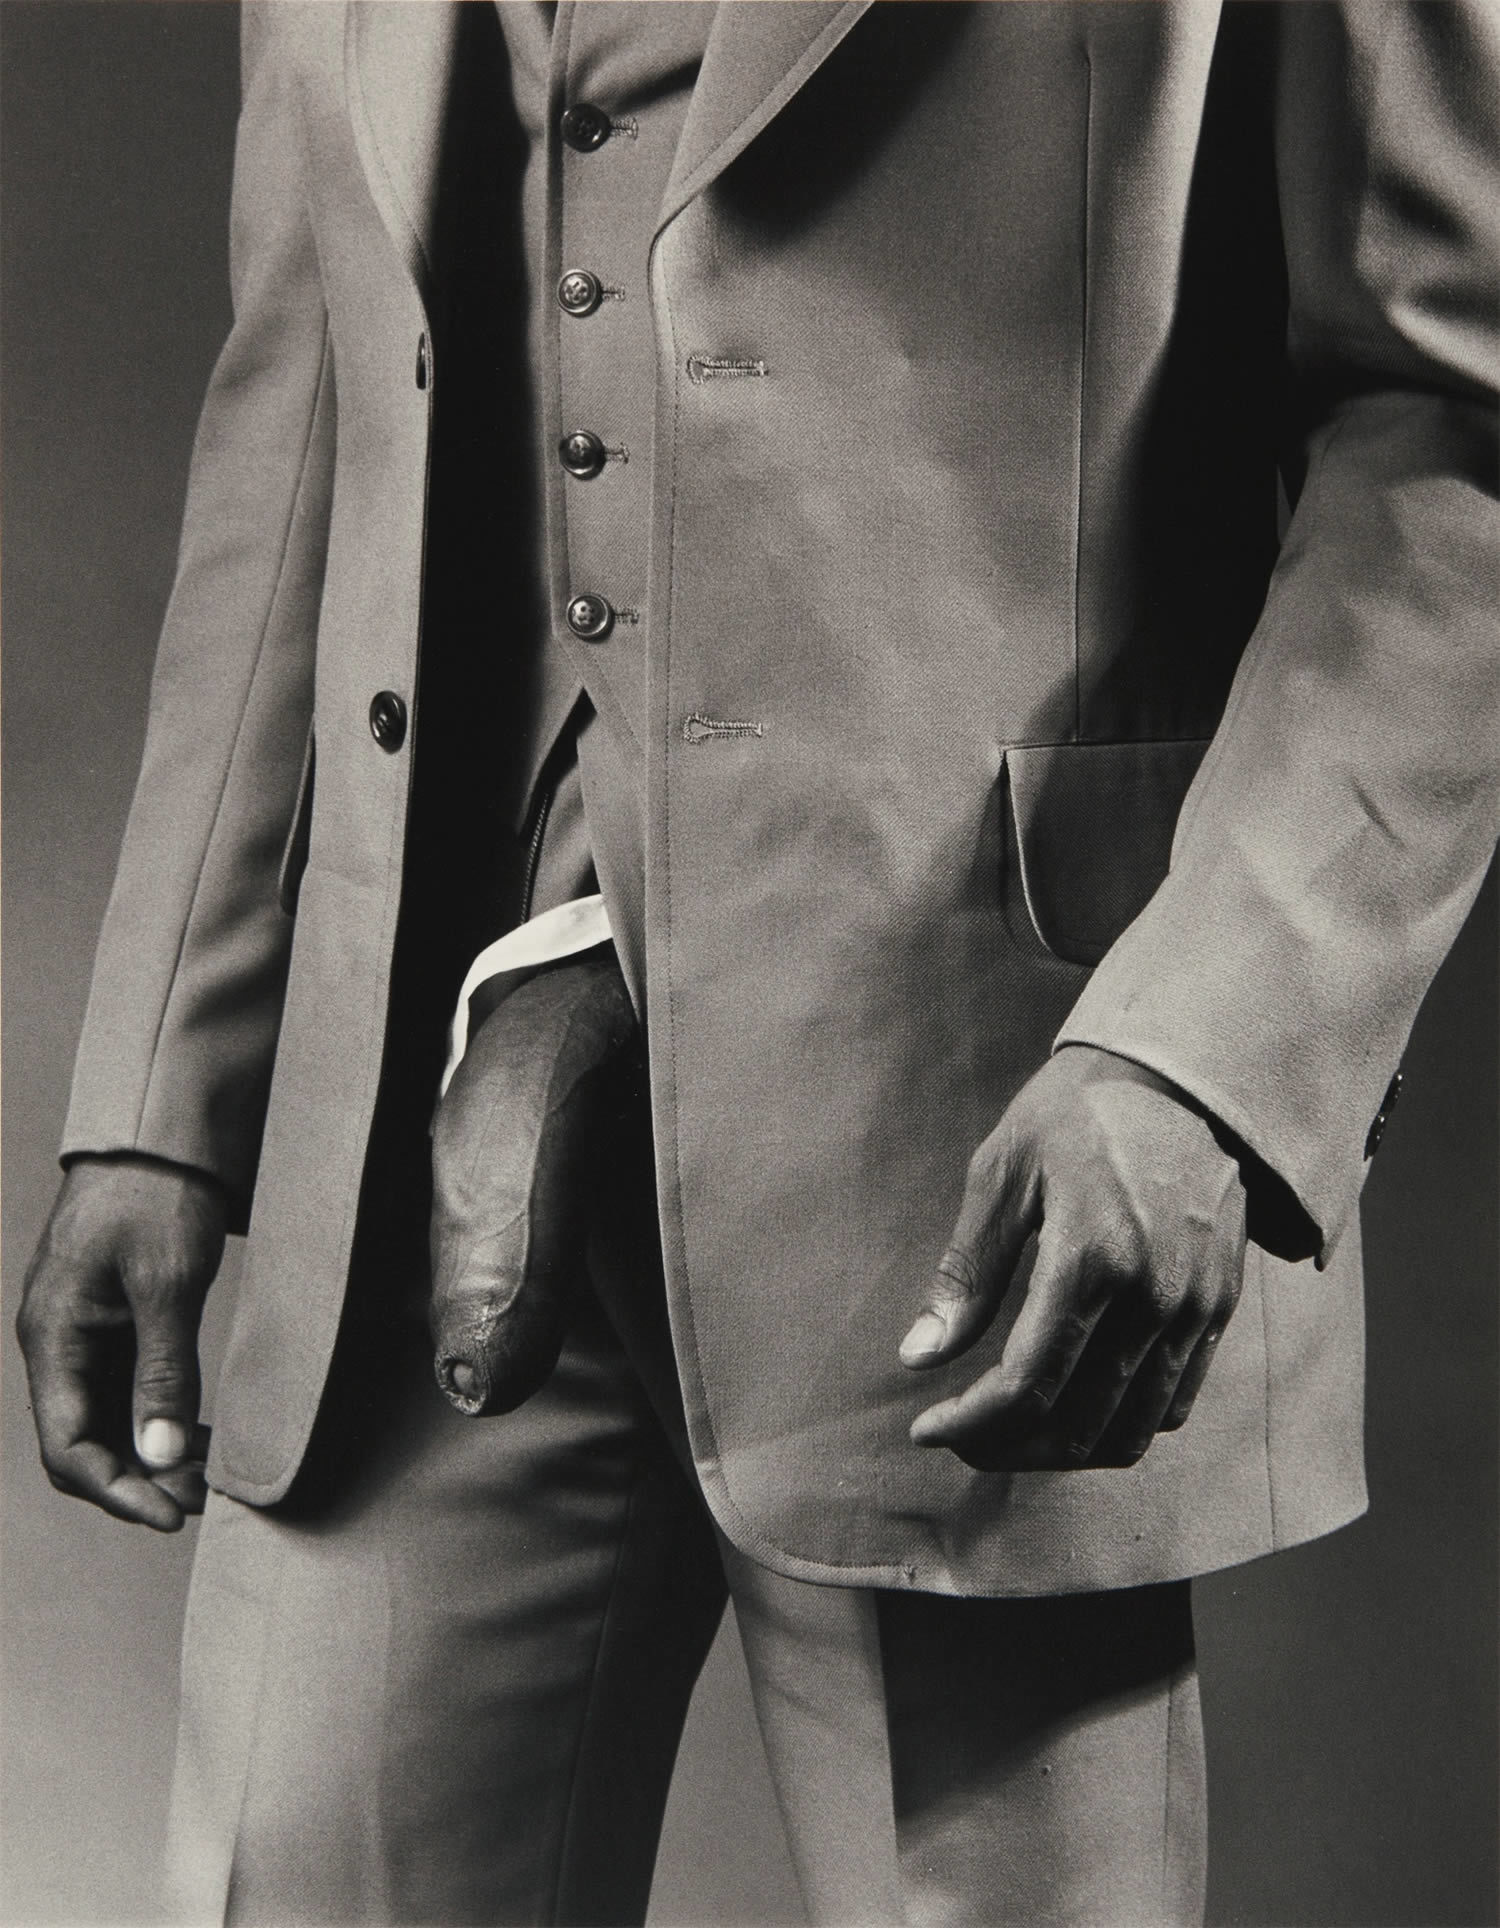 Robert Mapplethorpe - Man in Polyester Suit (1980) Foto: courtesy of Sotheby's